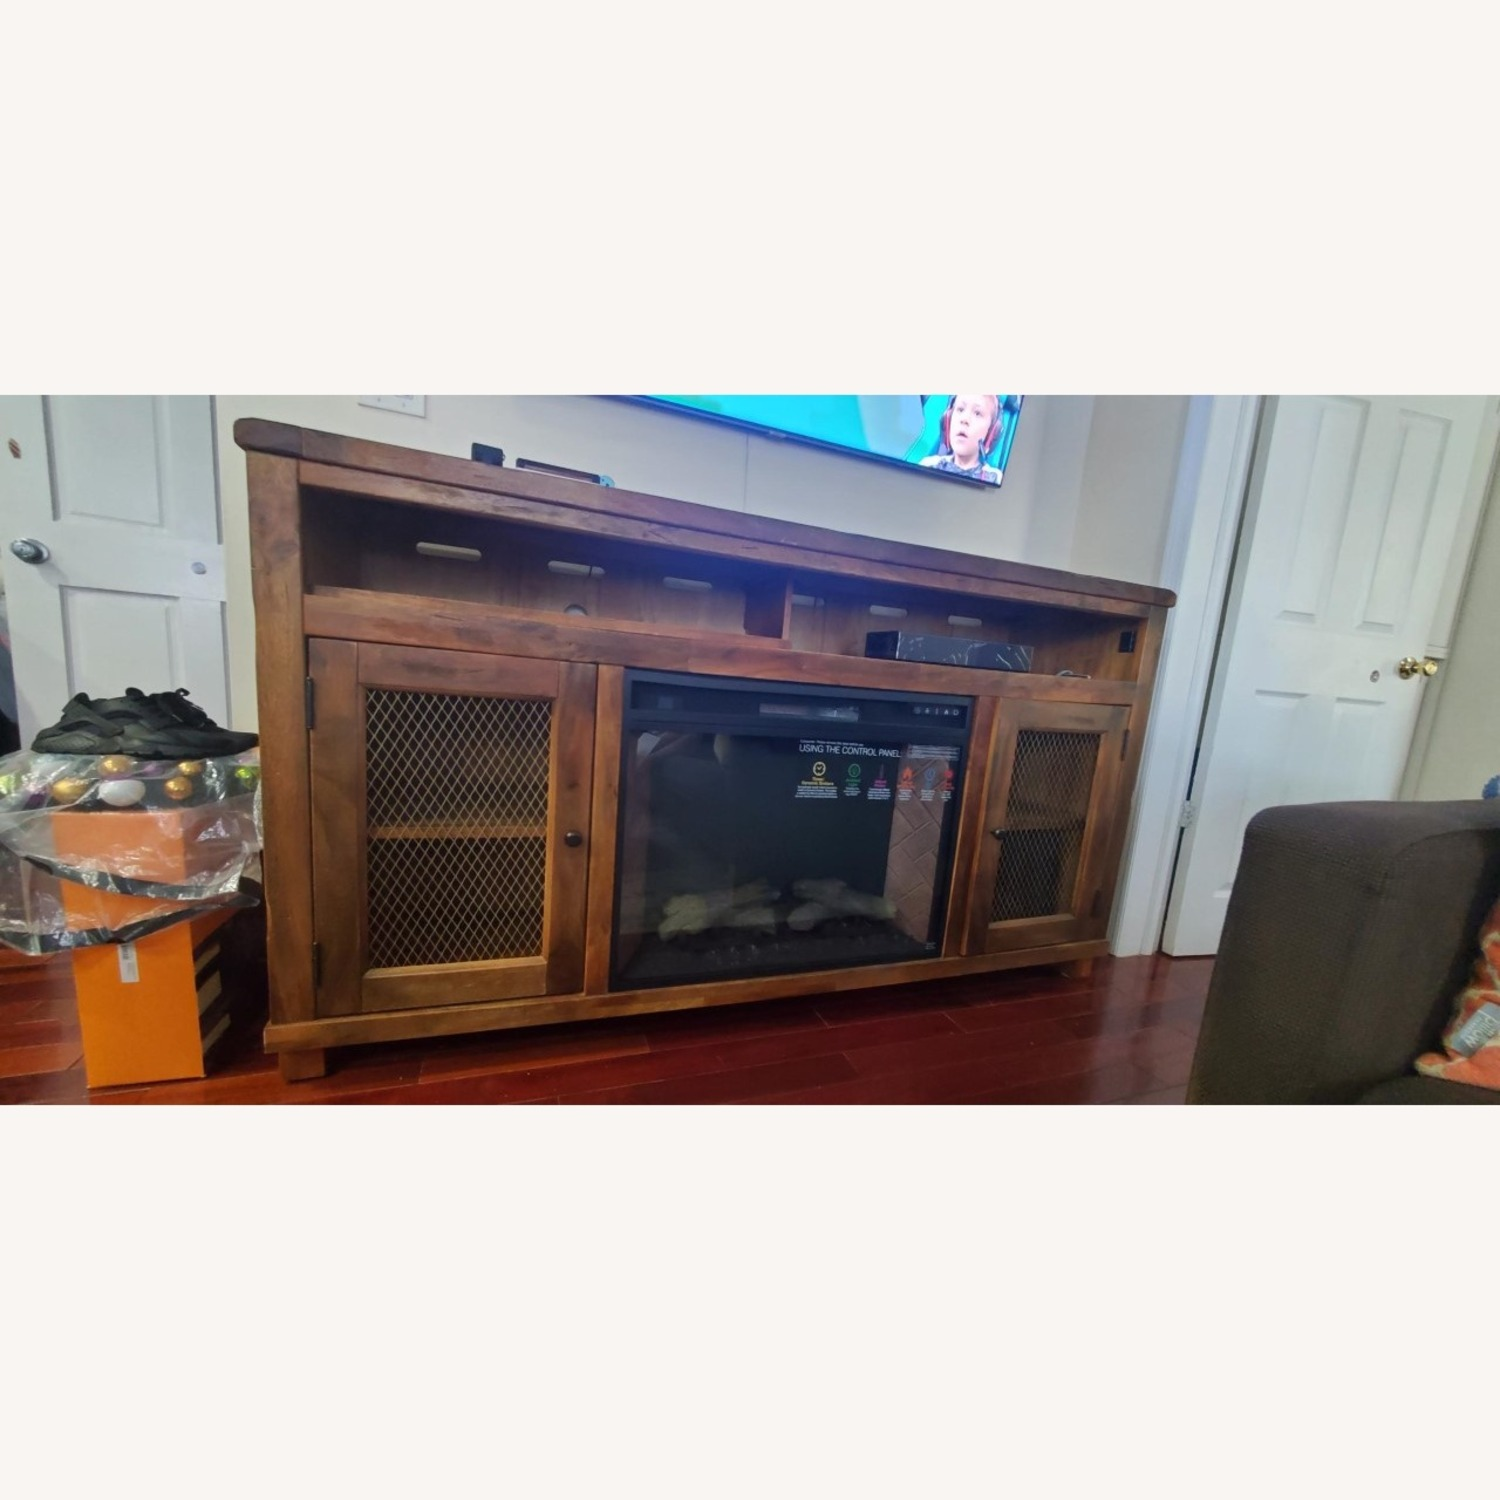 Ashley Furniture Credenza with a Fire Place, TV Stand - image-1